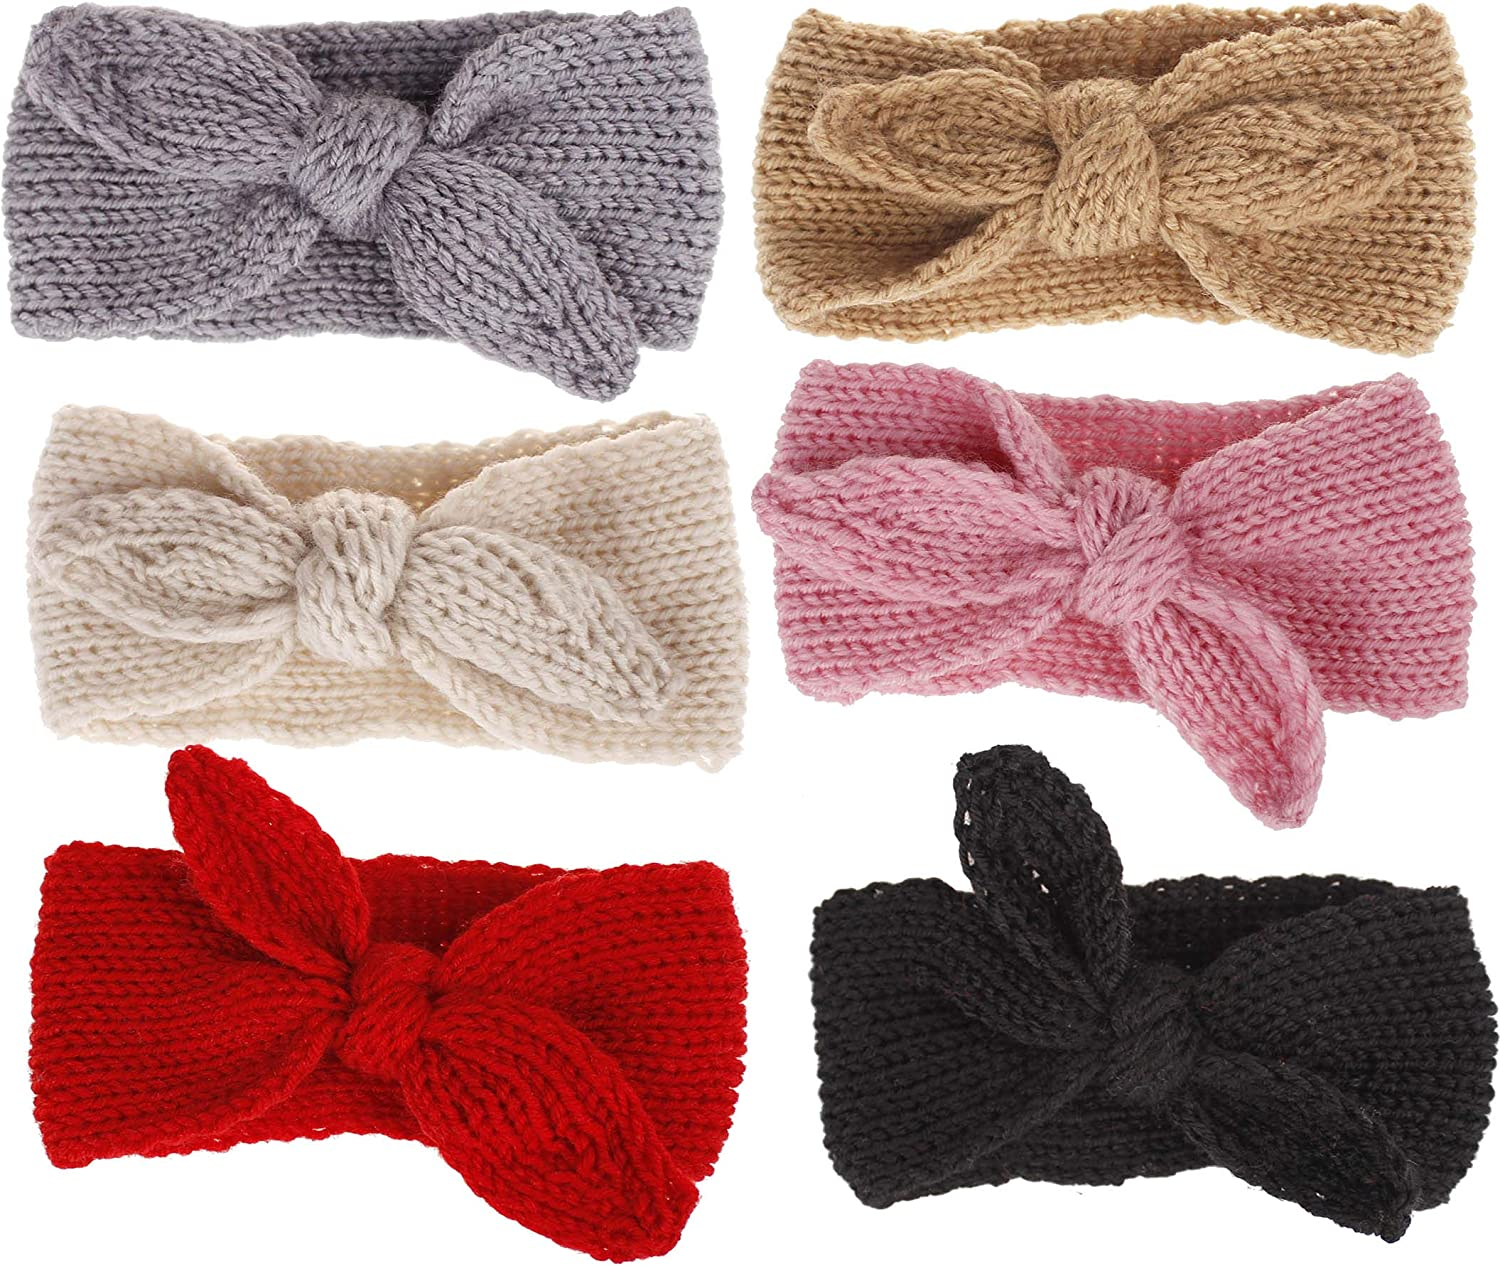 YCMI Baby Turban-Knitting Headband Winter-Wrap-Knotted-Wide - Toddlers Headbands 6 Pieces